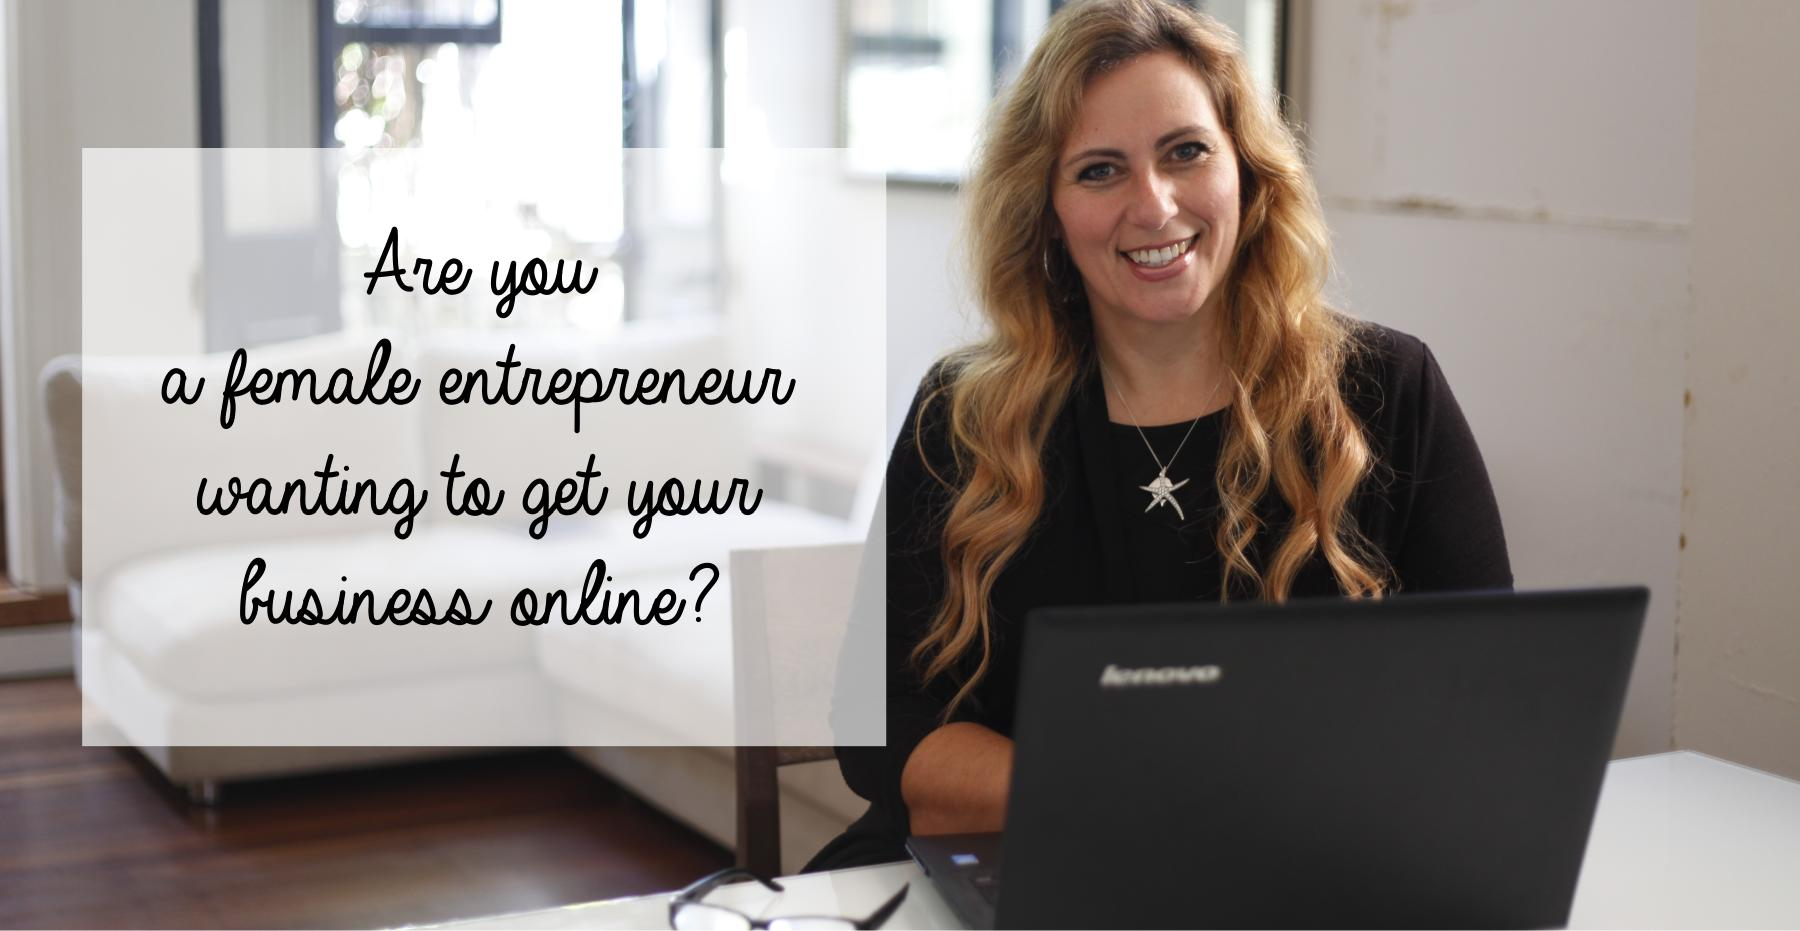 Ivana Katz - Are you a female entrepreneur wanting to get your business online